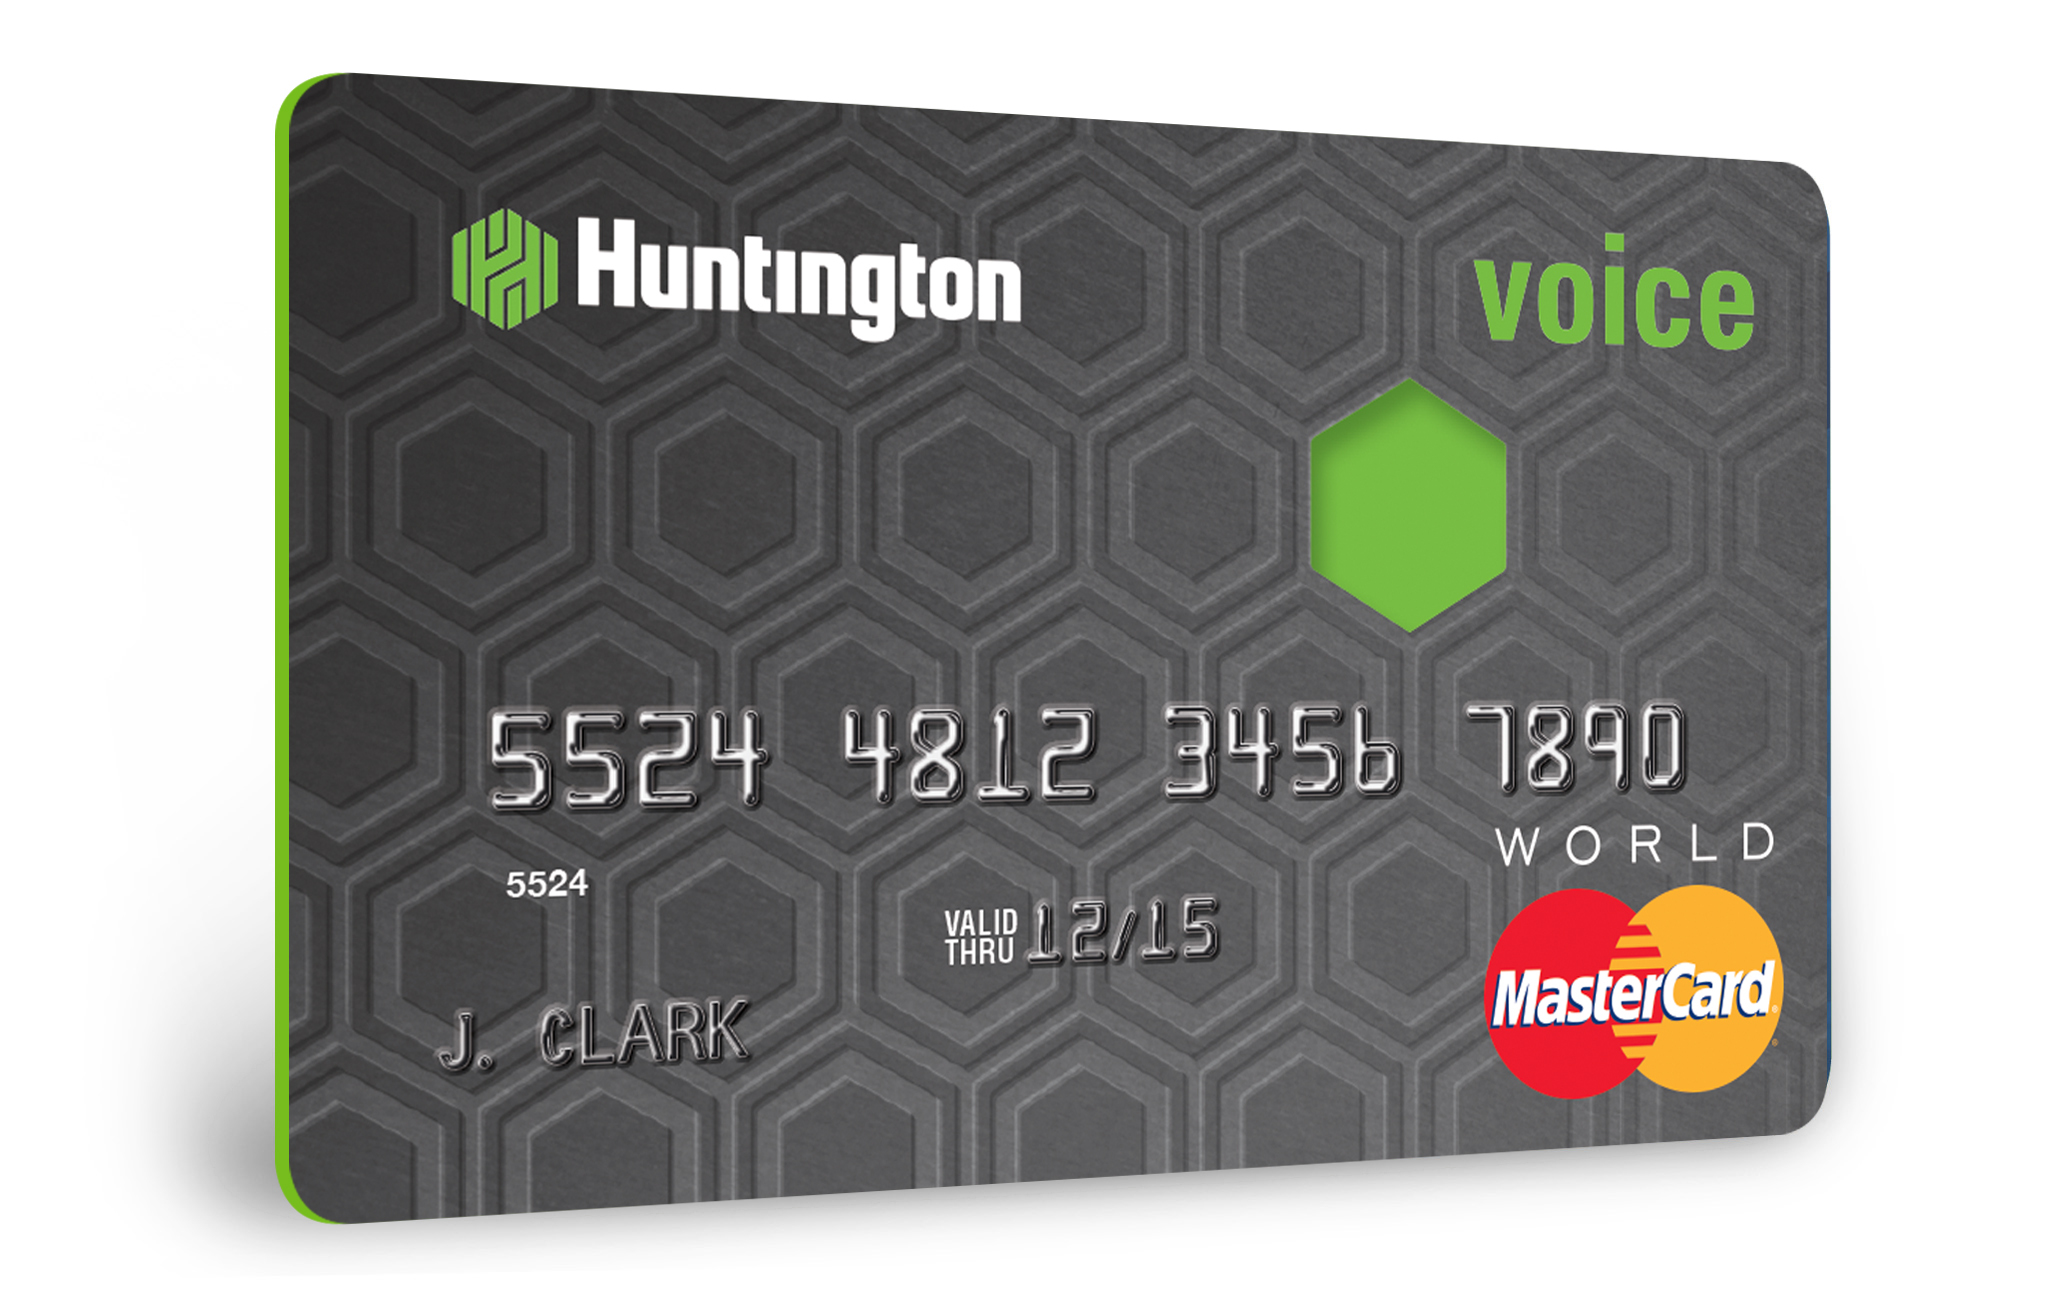 Huntington Bank Card Activation Number - Huntington bancshares incorporated investor relations contact todd beekman 614 480 3878 todd beekman huntington com or media relations contact